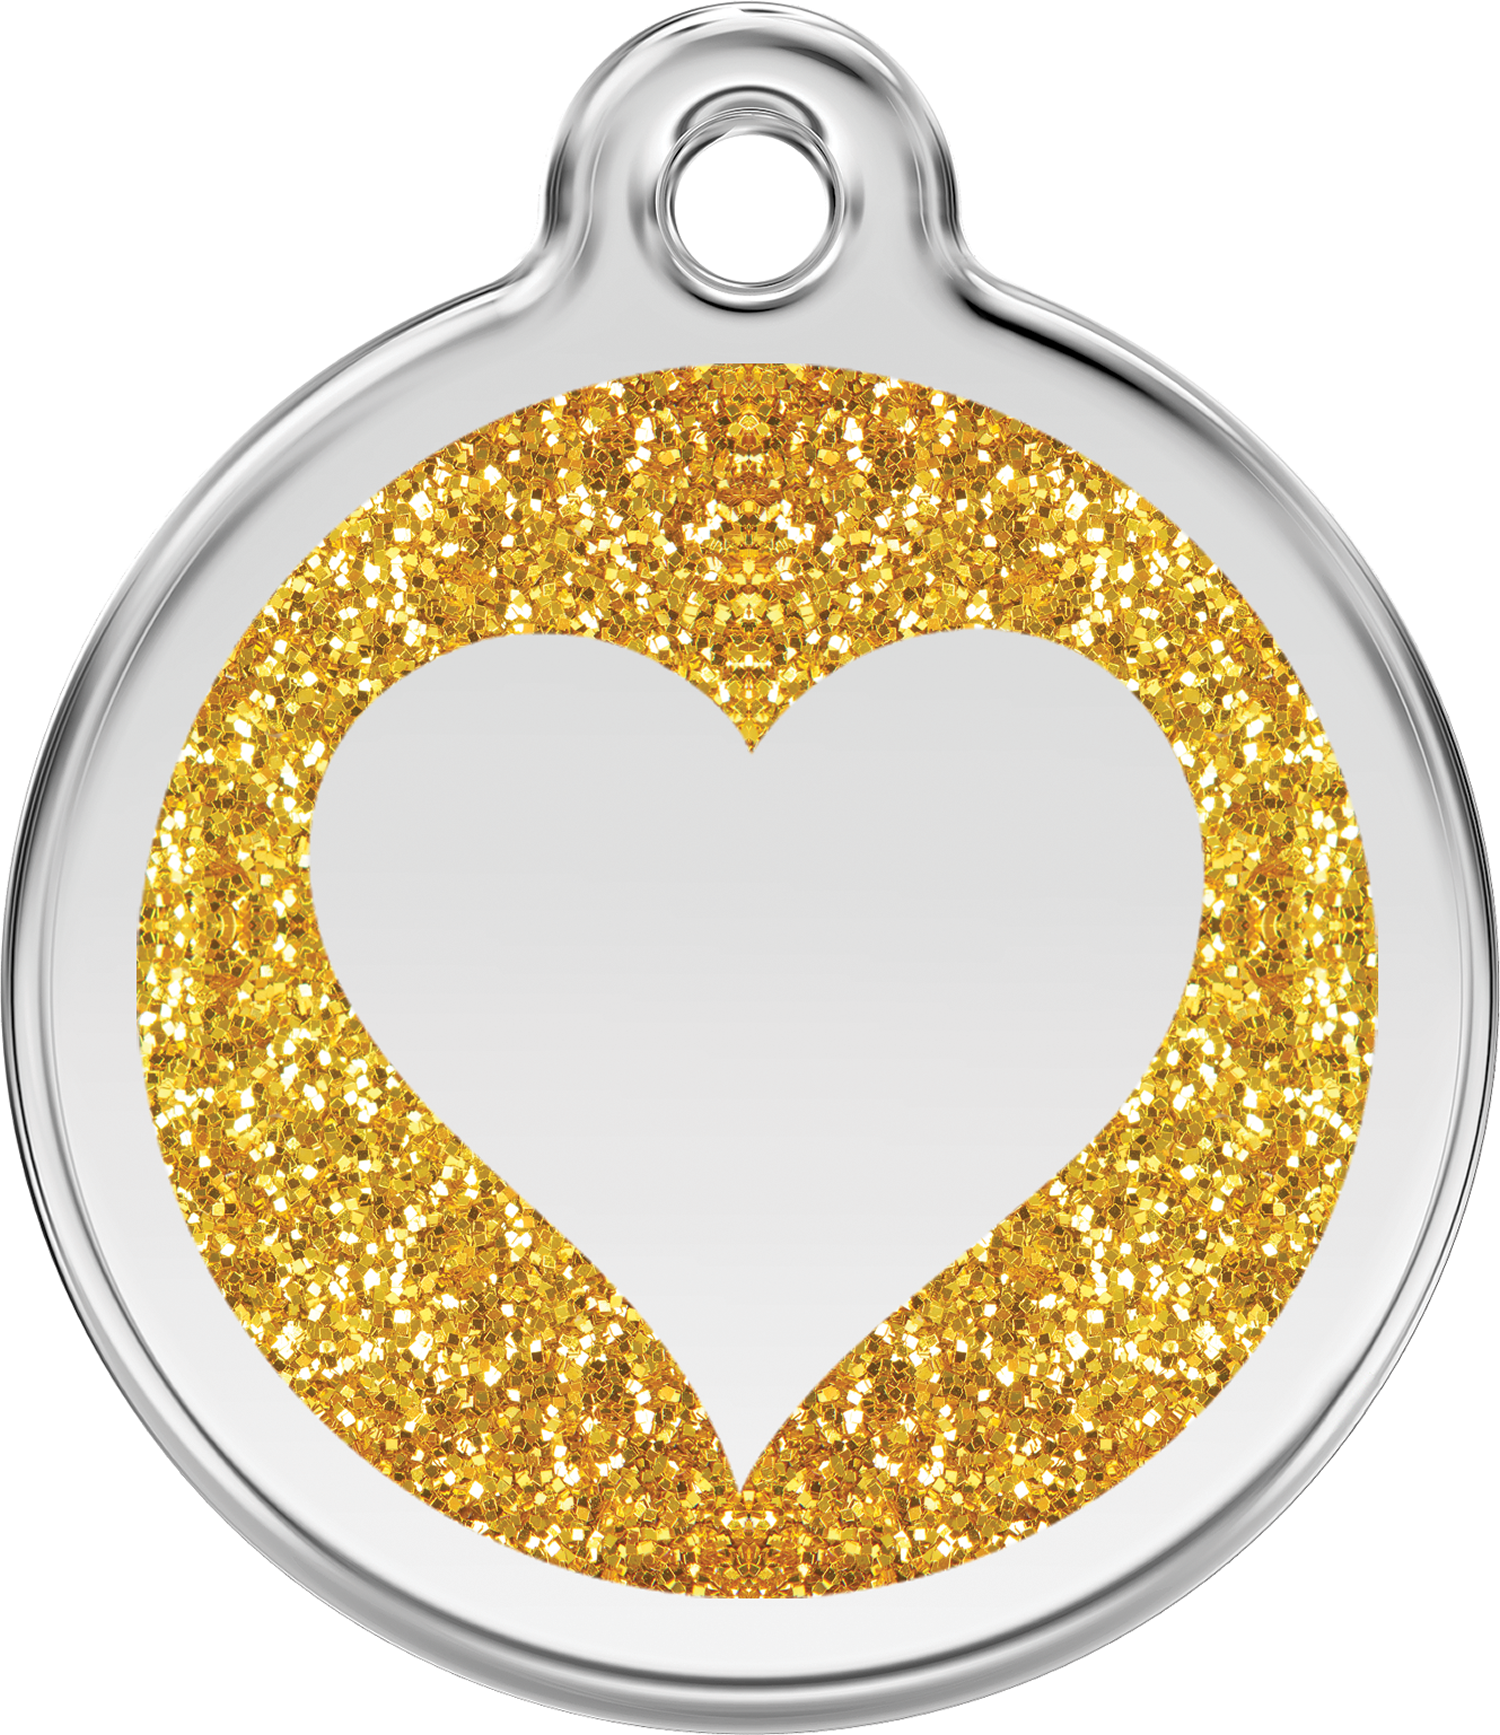 . Hdpng.com Image - Gold Glitter Heart, Transparent background PNG HD thumbnail